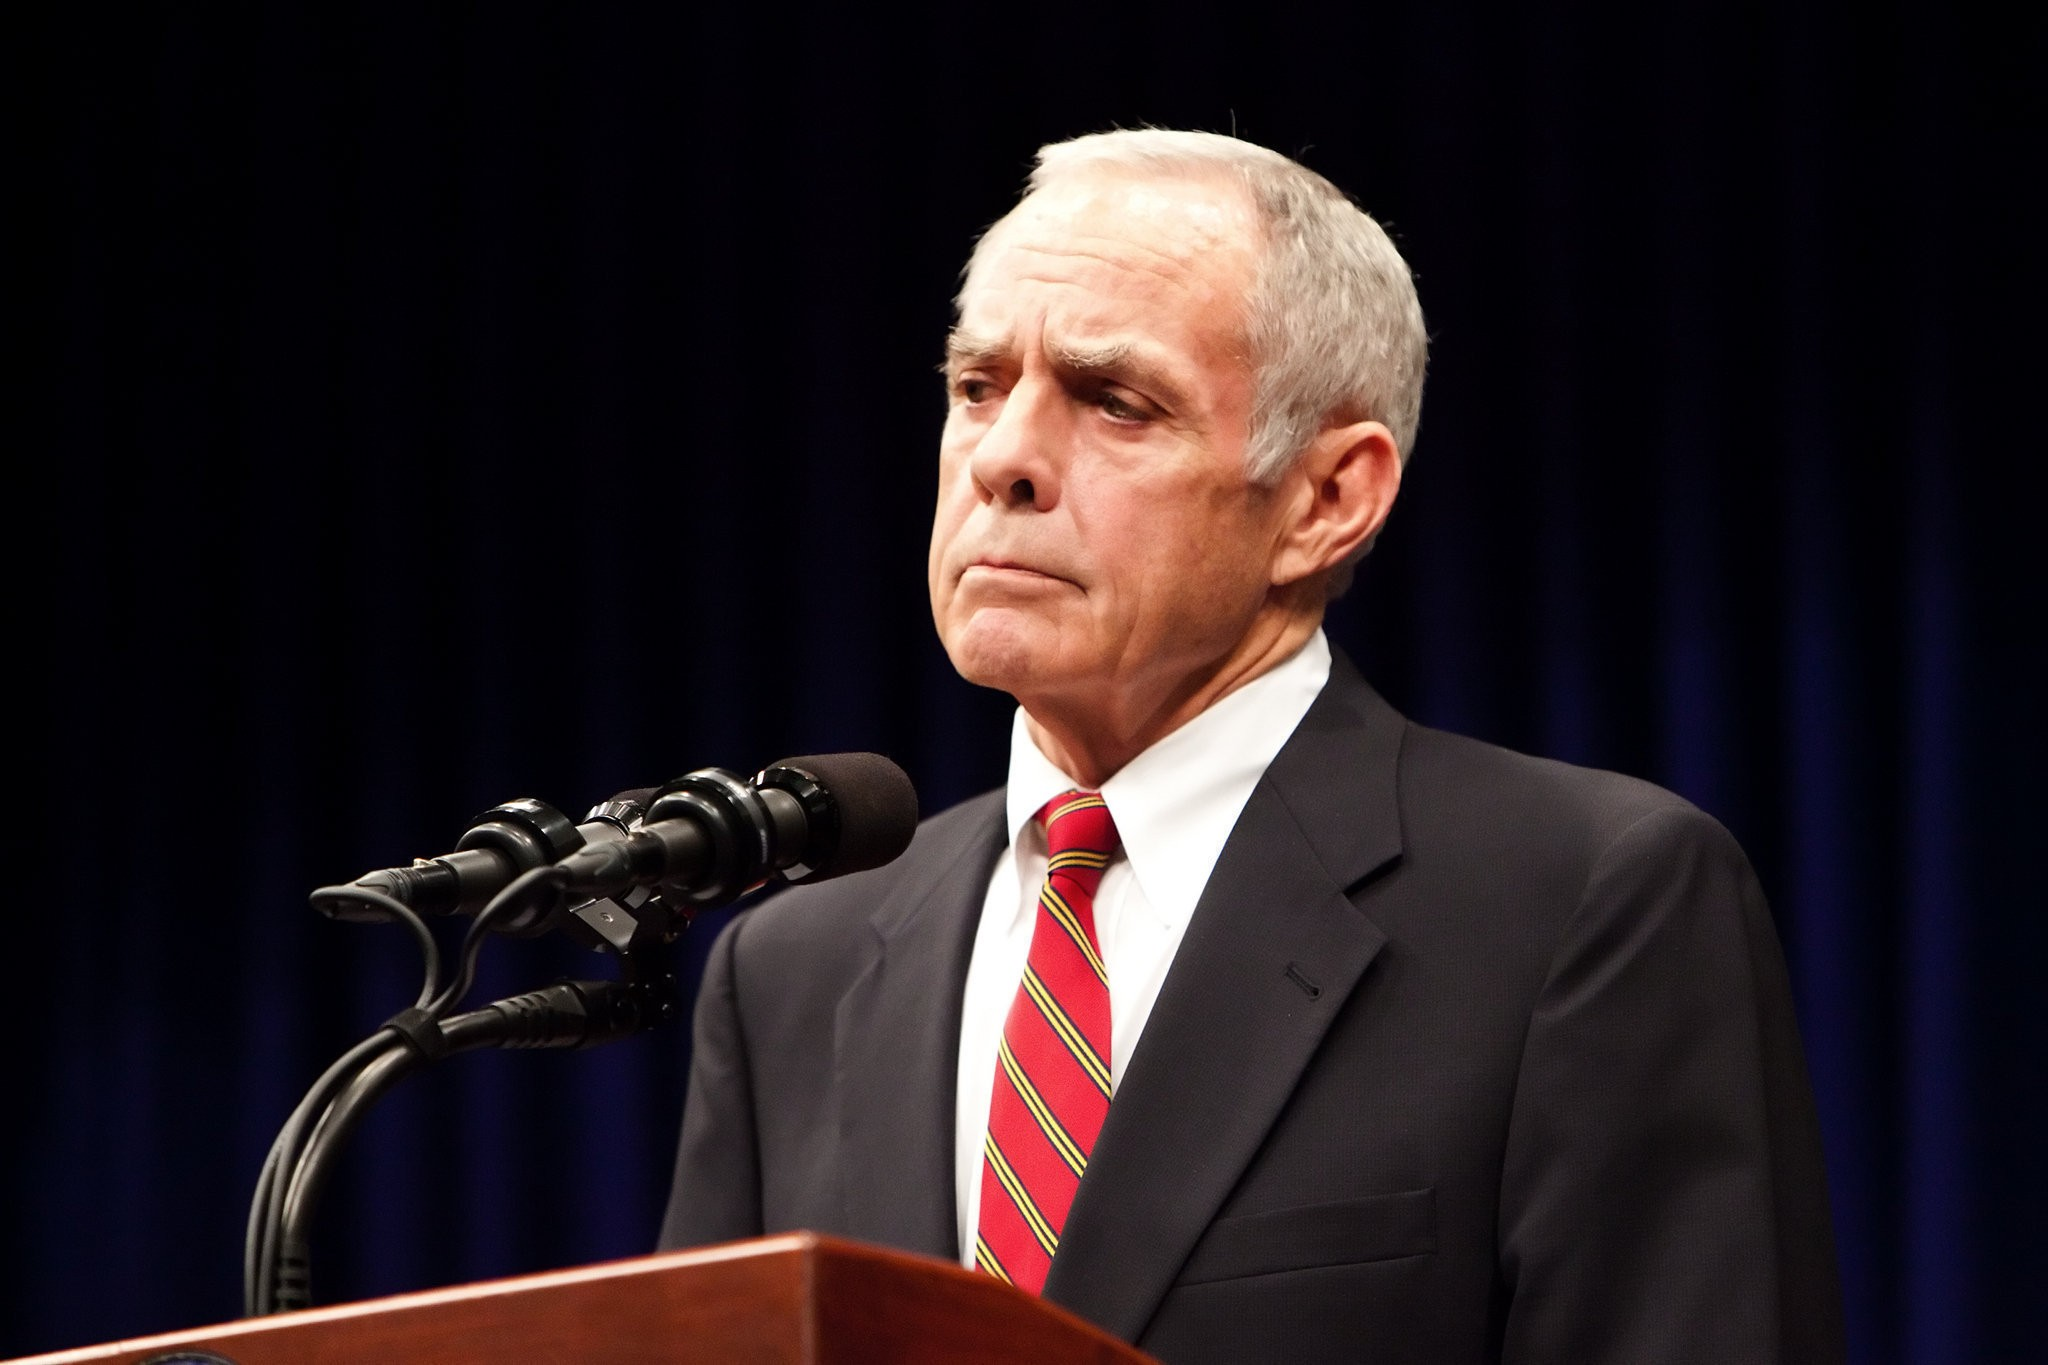 Retired Air Force general William Lynch, Gov. Tom Corbett's second appointed receiver for the City of Harrisburg, has been working behind the scenes not only to structure a deal to resolve the incinerator debt, but also to put the city in the best possible legal position should he have to take it into bankruptcy. PAUL CHAPLIN, The Patriot-News